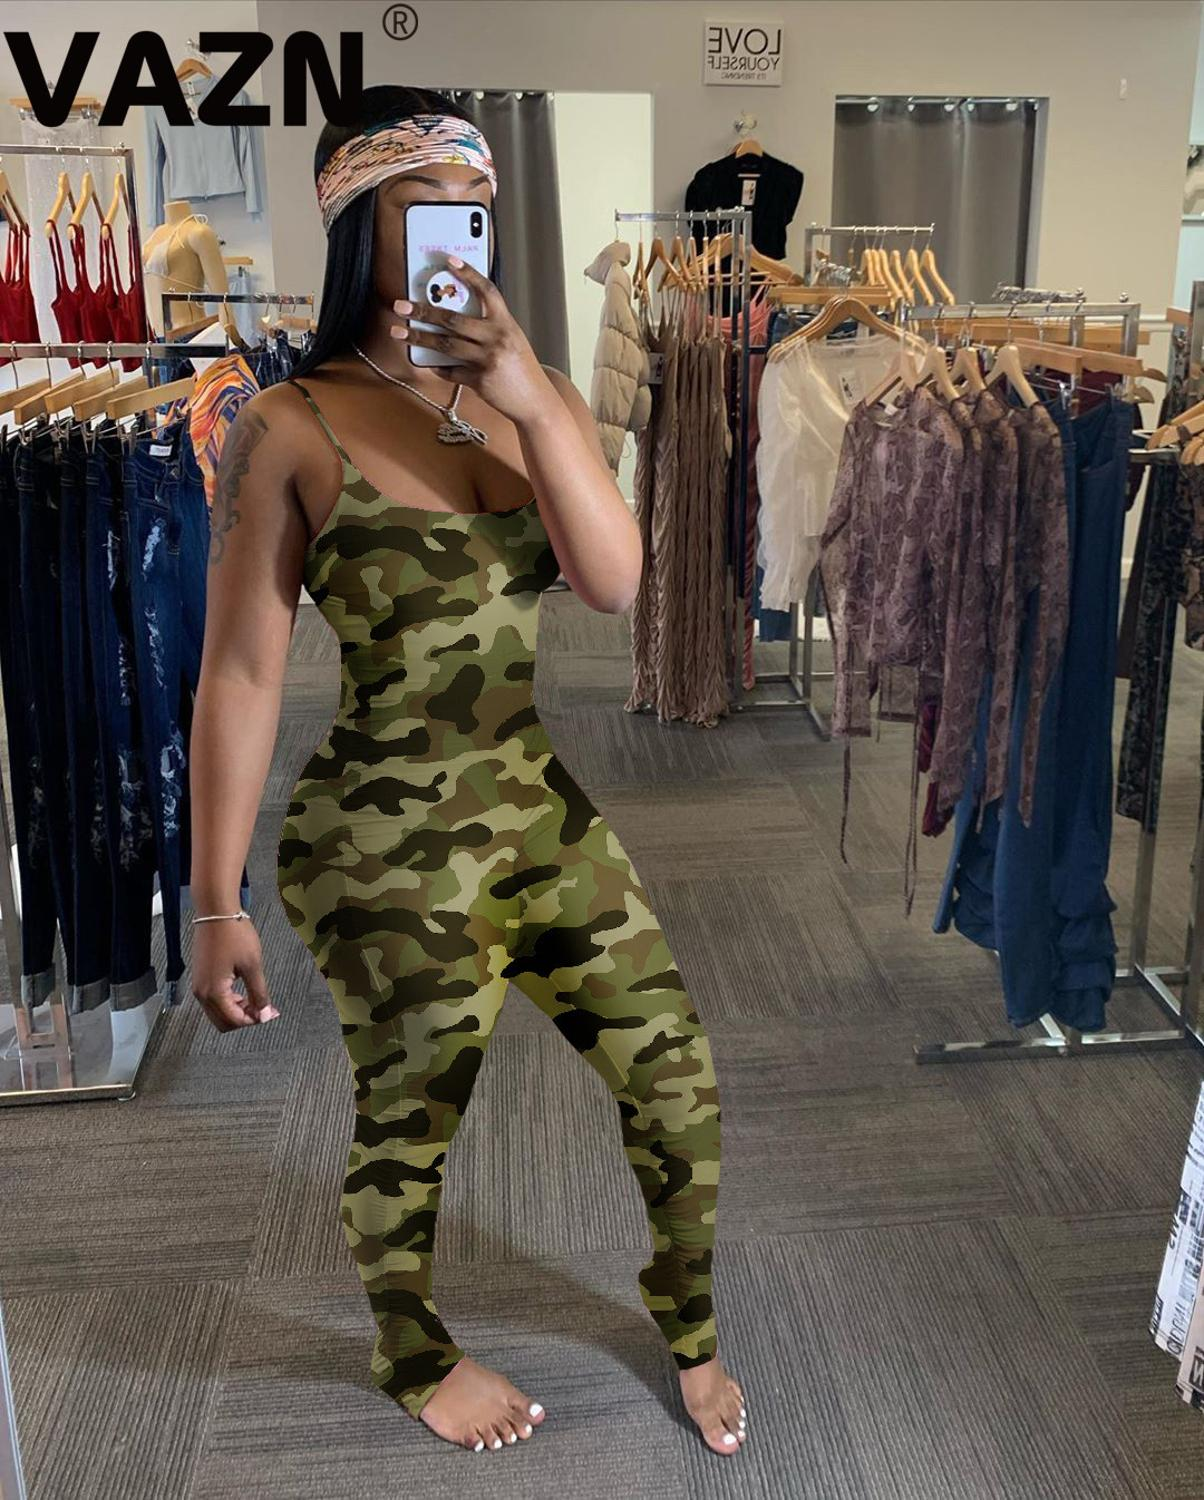 VAZN New product 2020 summer sexy lady 6 colors long jumpsuit spaghetti strap long colorful rompers skinny camouflage jumpsuits